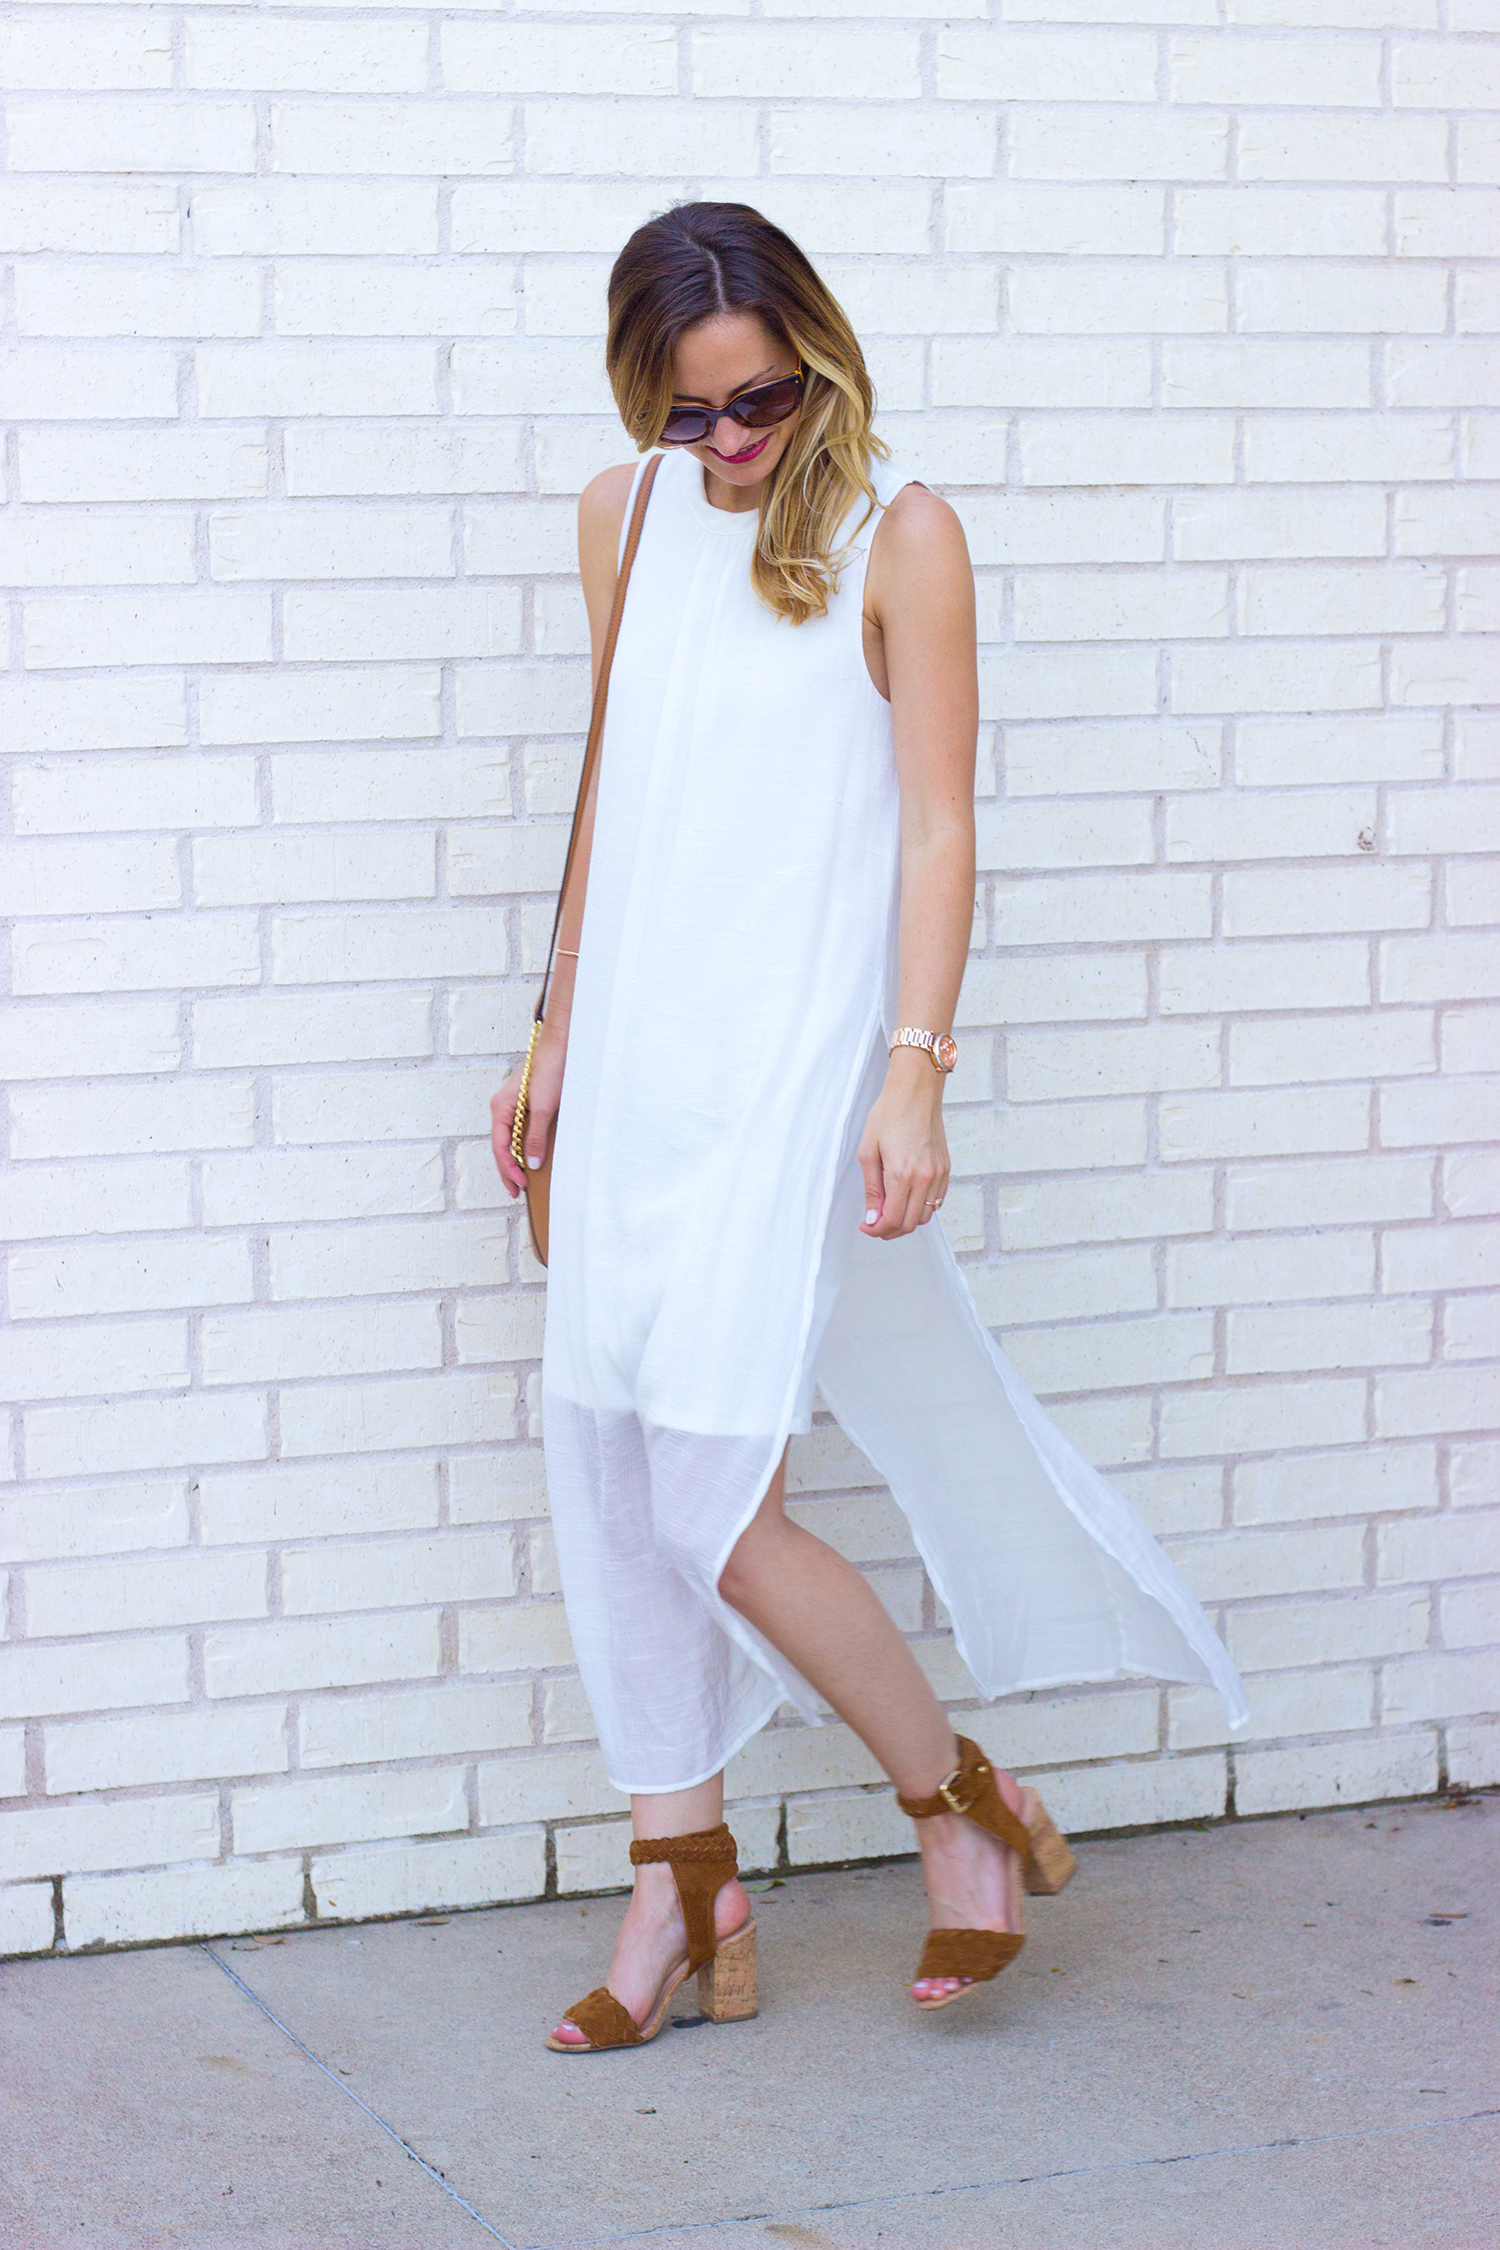 livvyland-blog-olivia-watson-white-sheer-midi-dress-painted-threads-braided-sandal-heels-austin-texas-fashion-blogger-rose-gold-kendra-scott-prada-cateye-sunglasses-spring-outfit-2